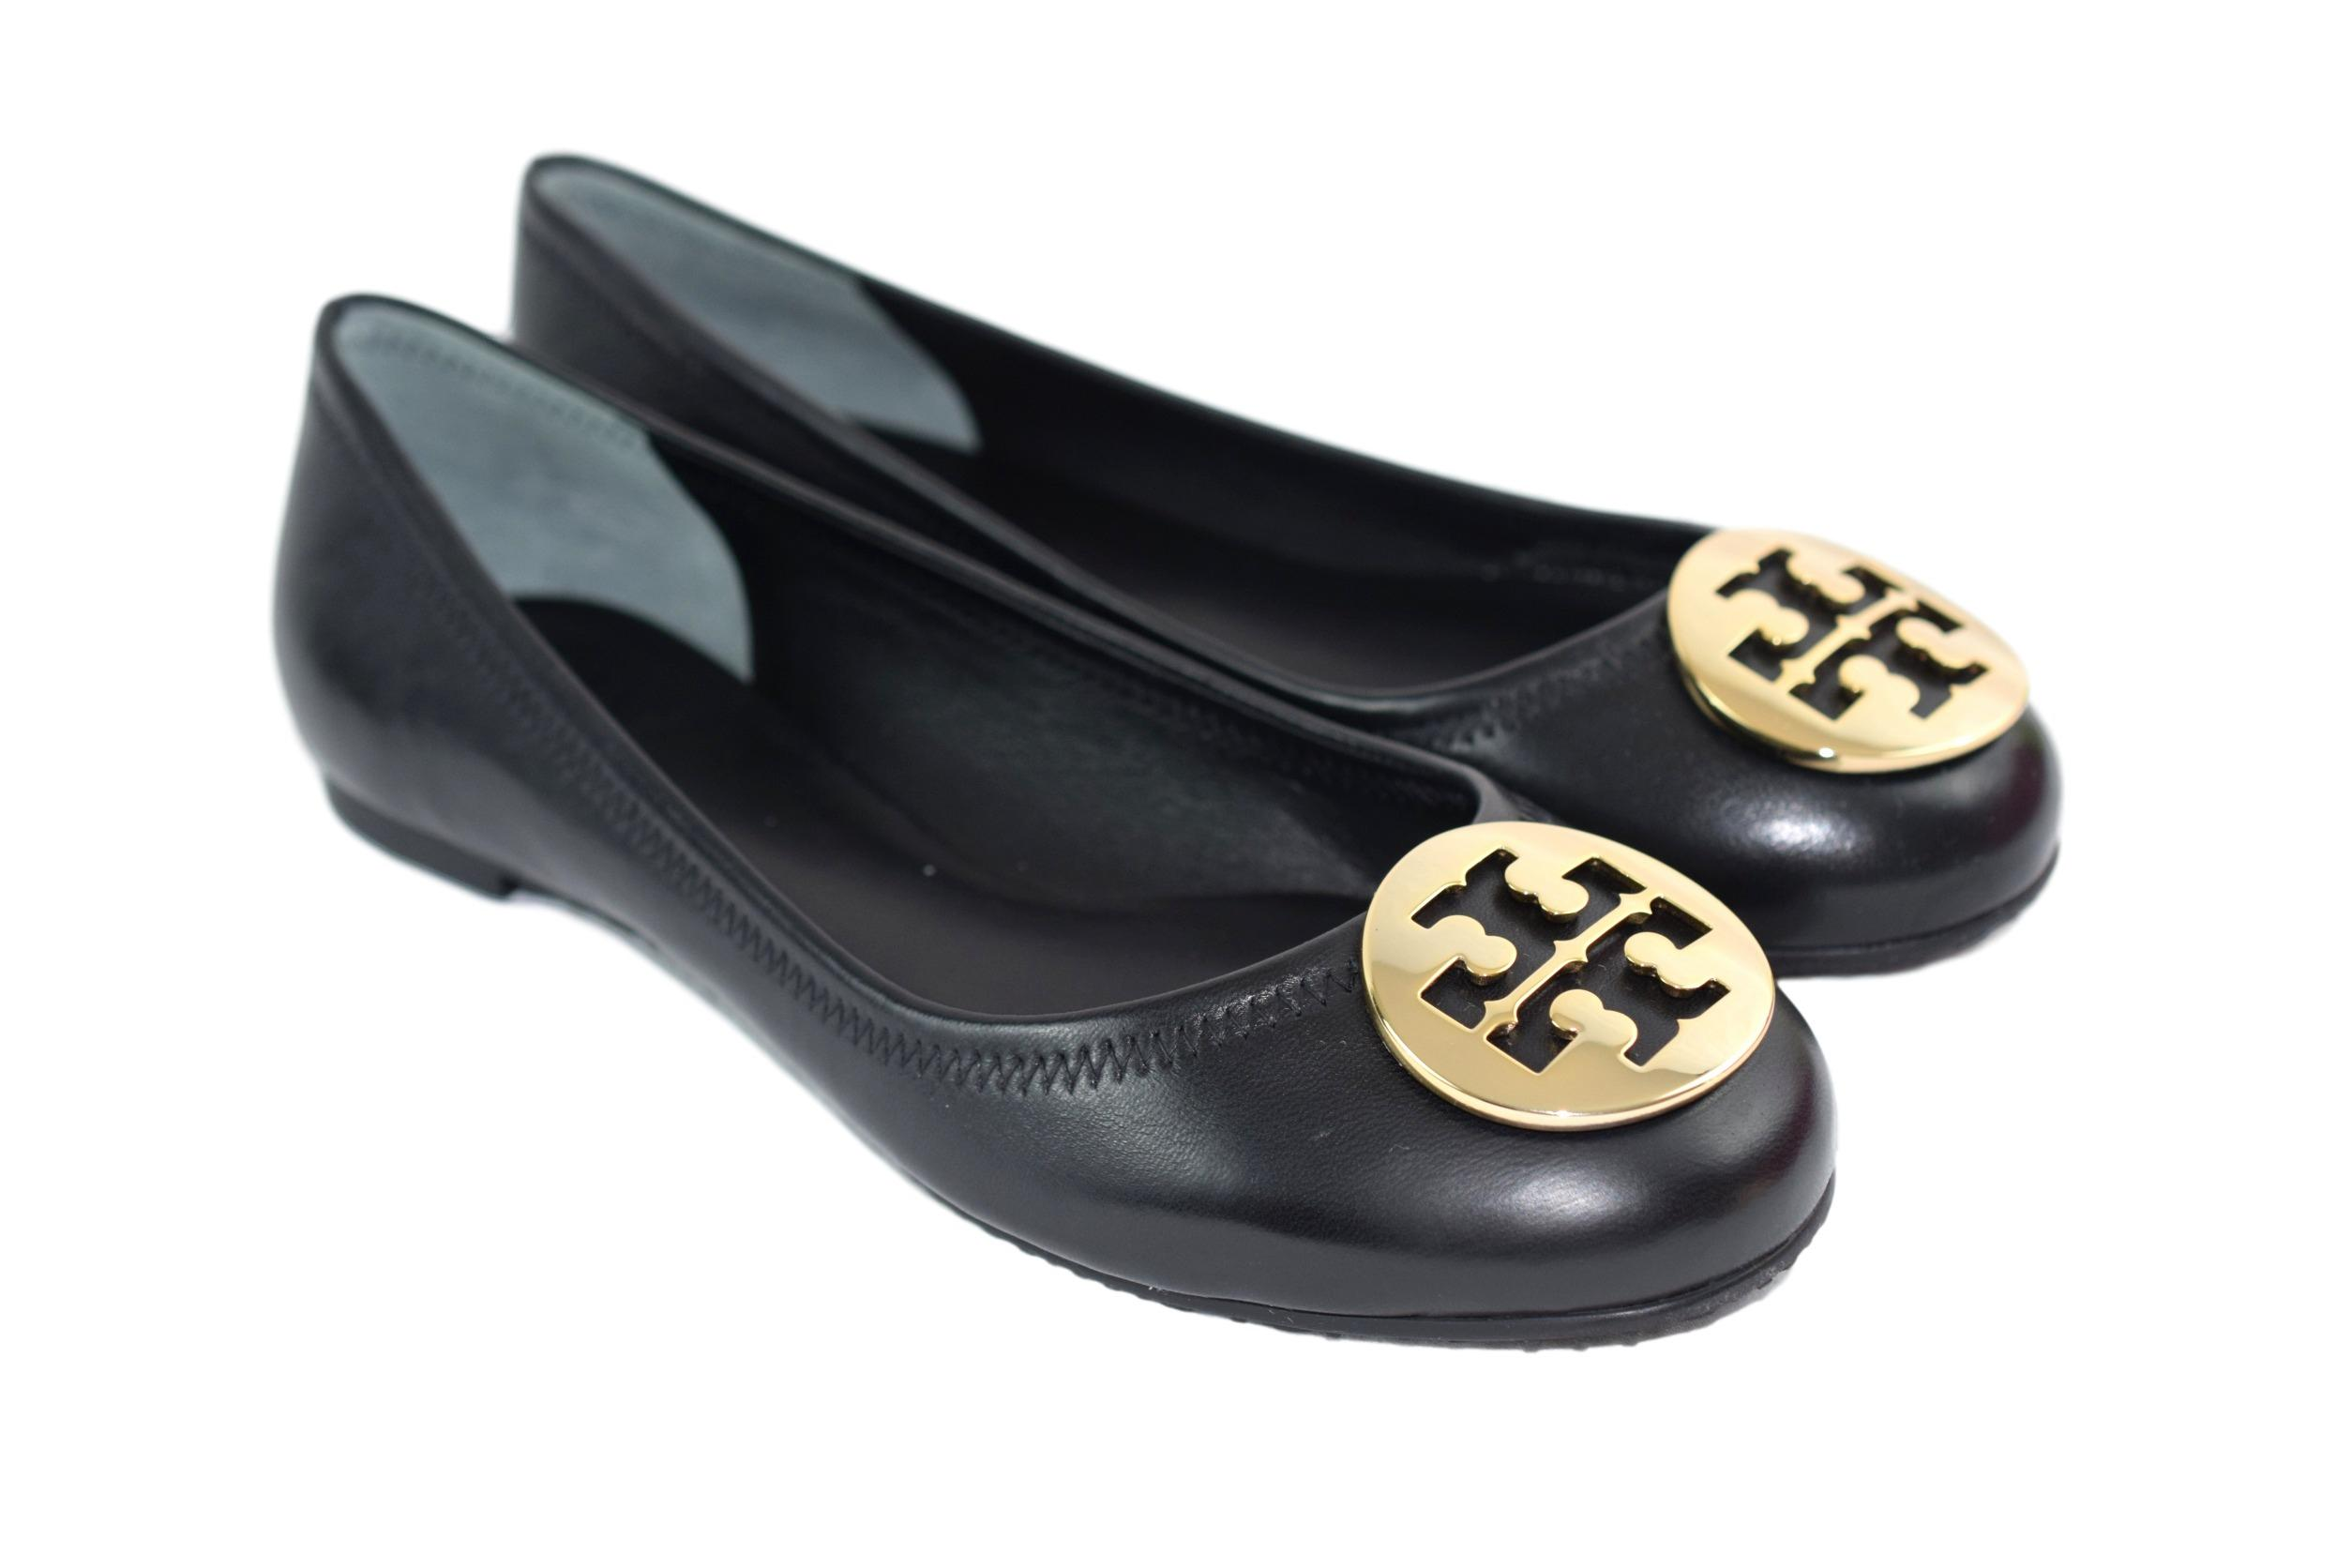 09399ae33 ... amazon tory burch reva ballet 5008690 black gold flats. 12345678910  0982d 34f2b